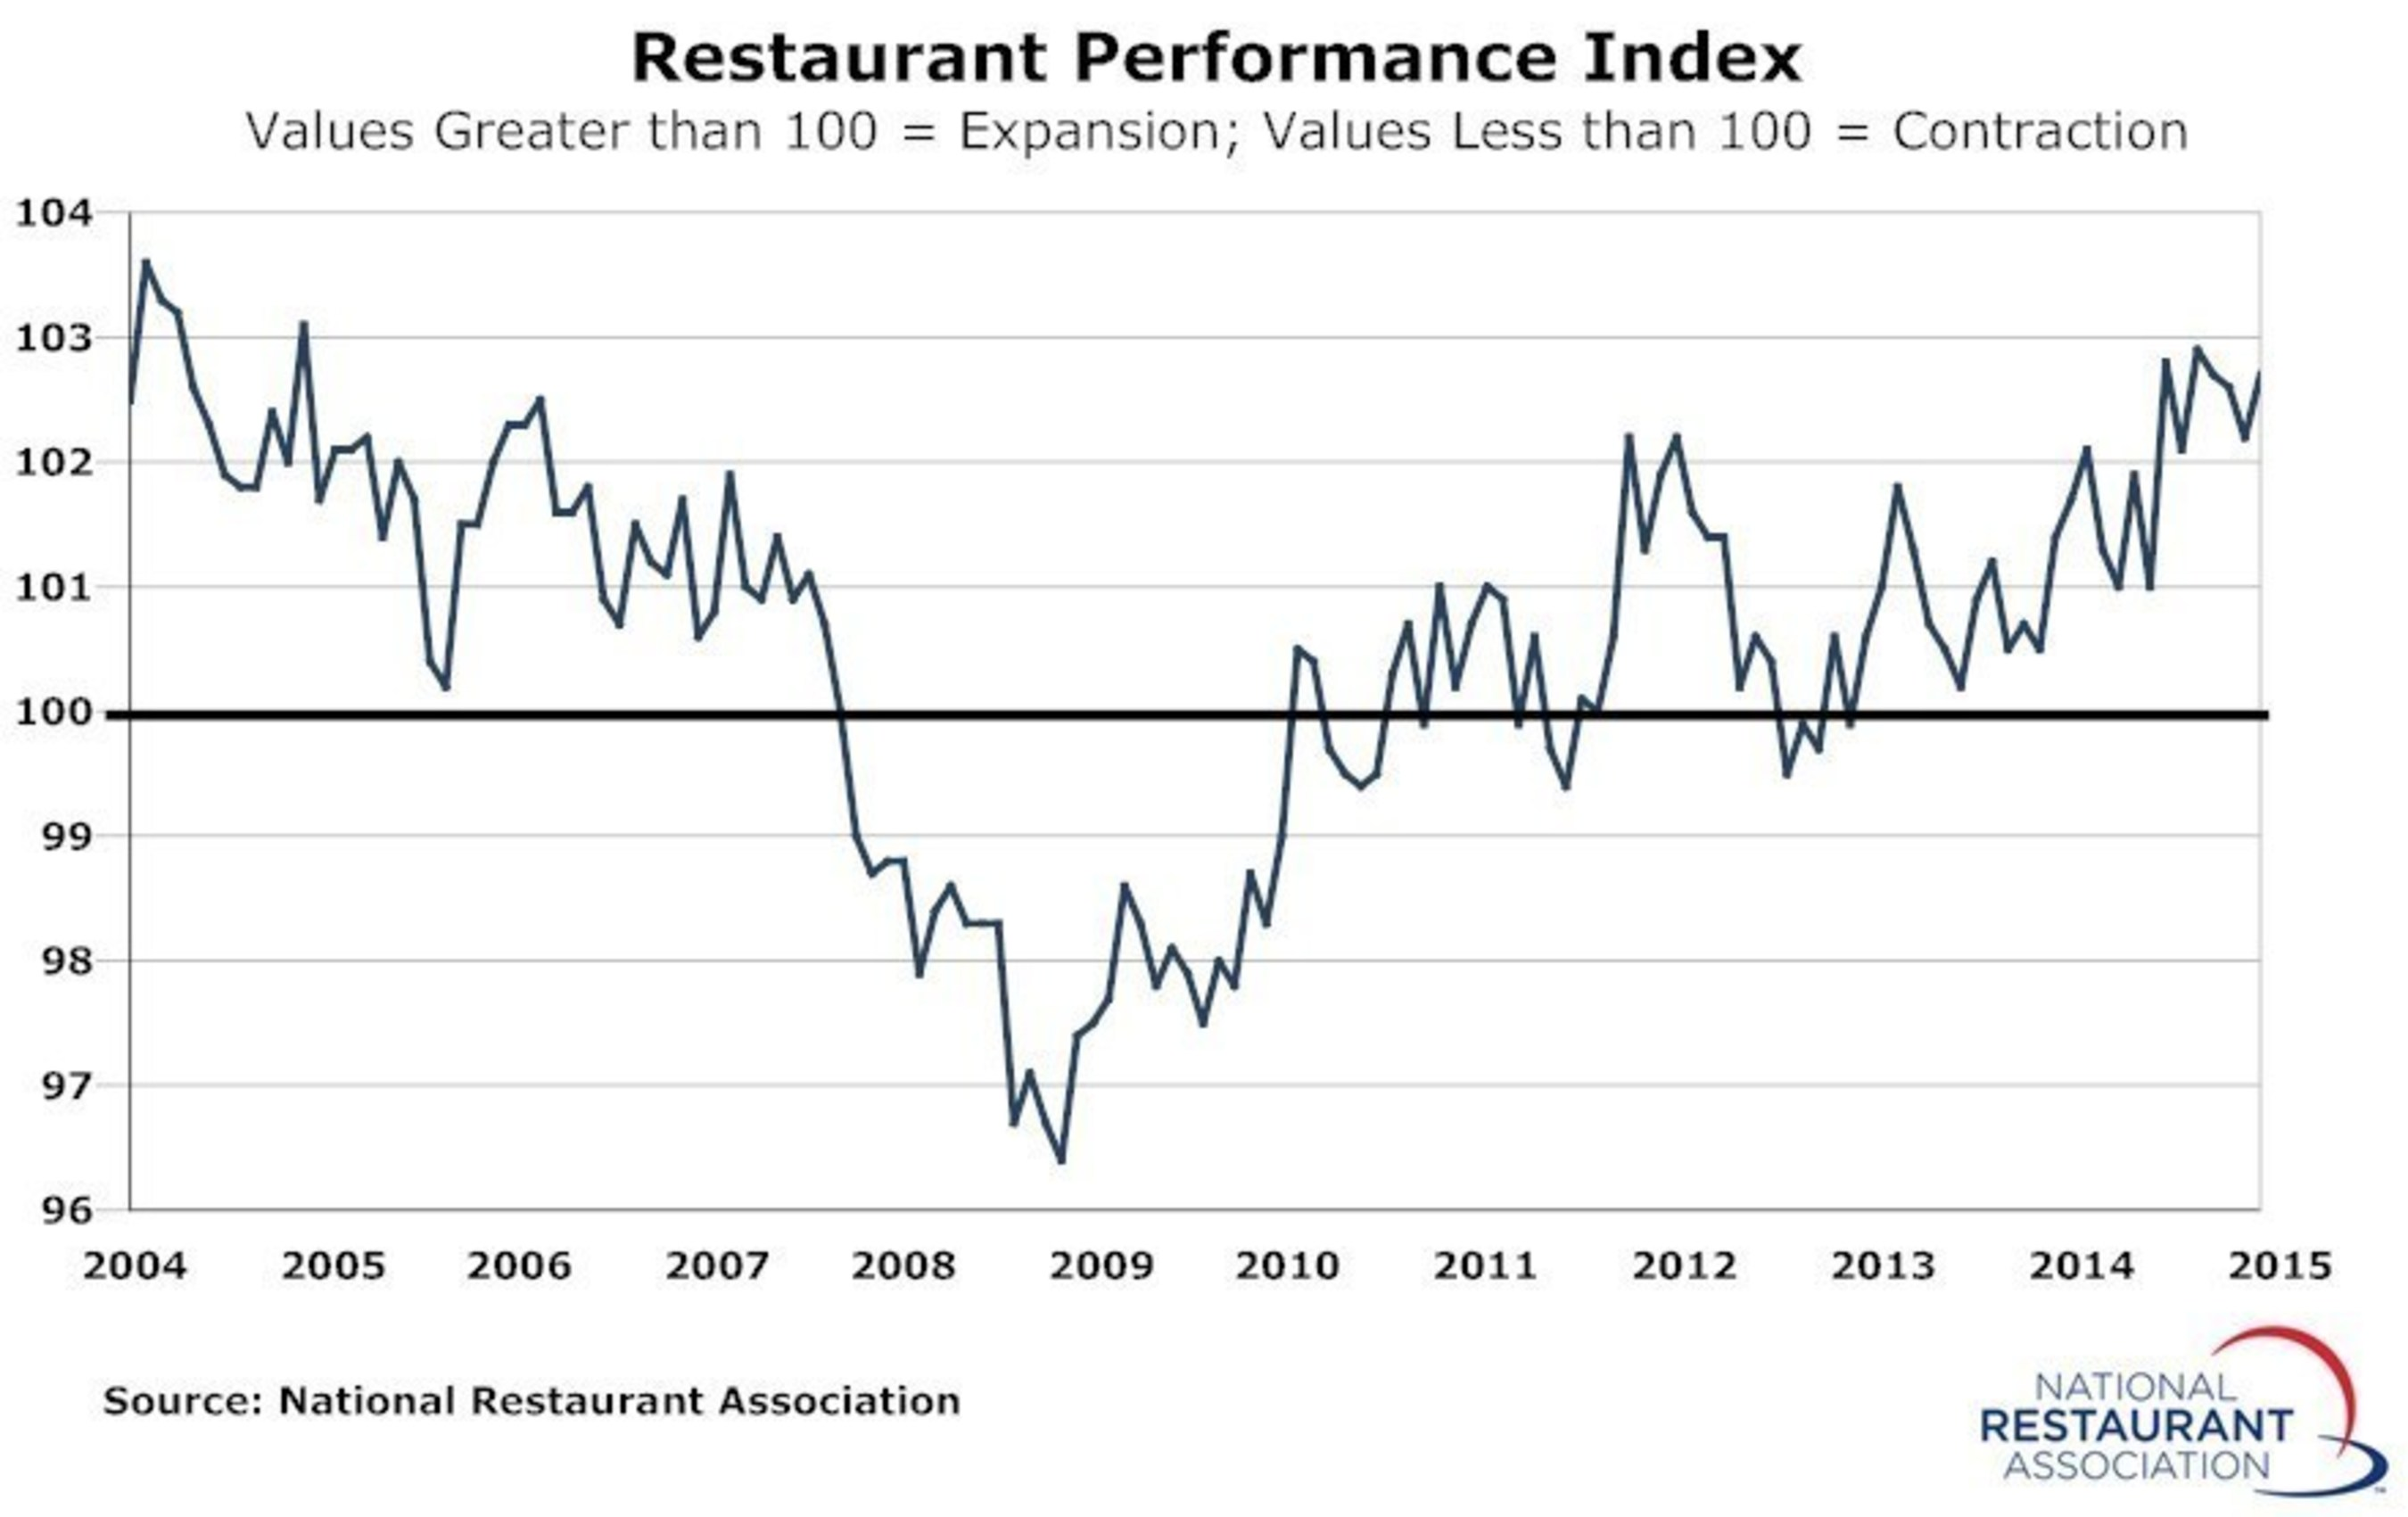 Driven by stronger same-stores sales and customer traffic levels, the National Restaurant Association's Restaurant Performance Index (RPI) posted a moderate gain in April. The RPI - a monthly composite index that tracks the health of and outlook for the U.S. restaurant industry - stood at 102.7 in April, up 0.5 percent from a level of 102.2 in March.